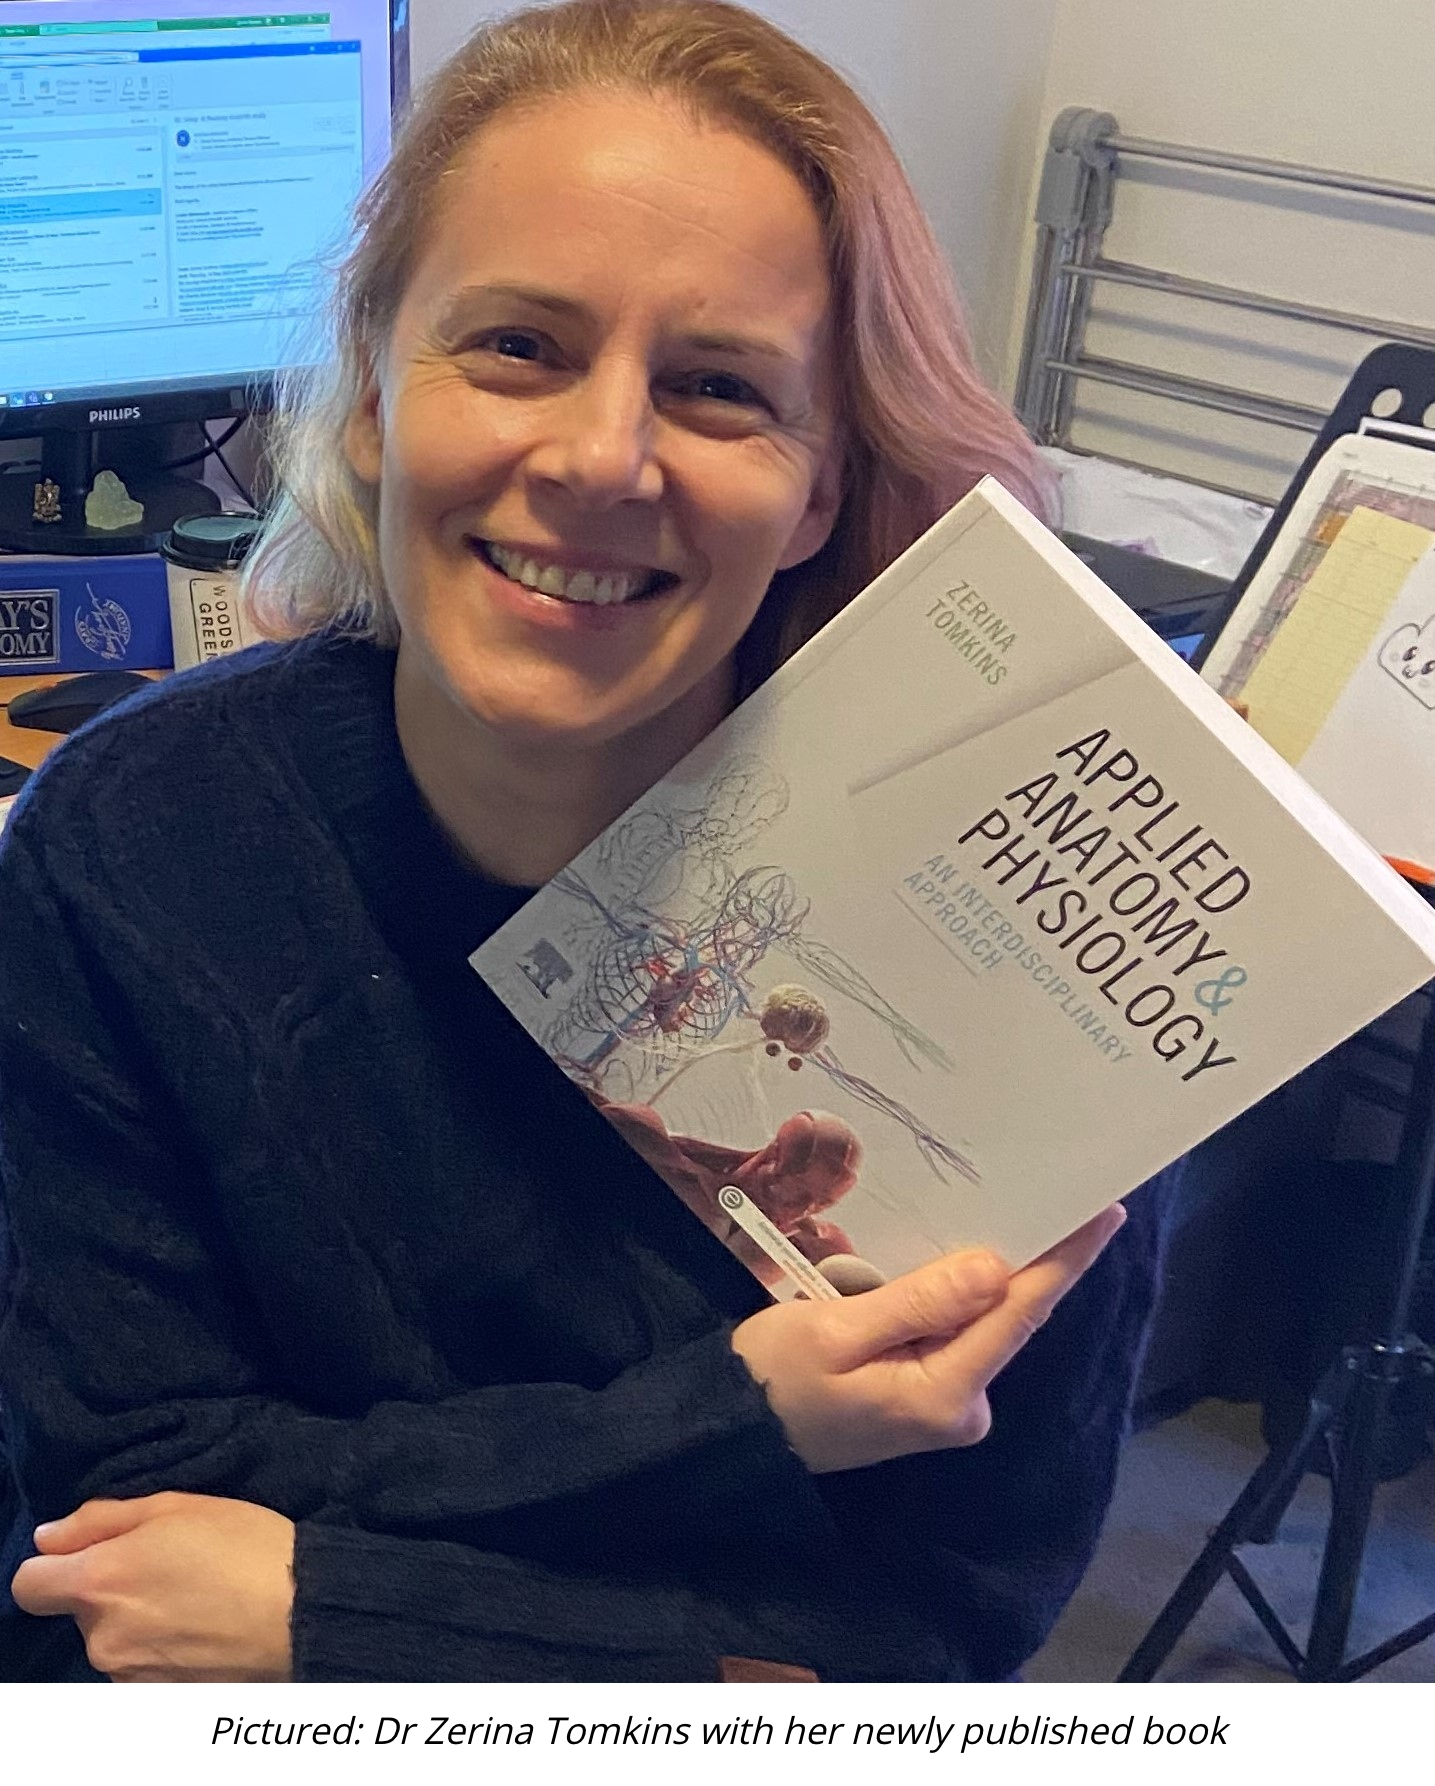 Dr Zerina Tompkins holding her newly published book